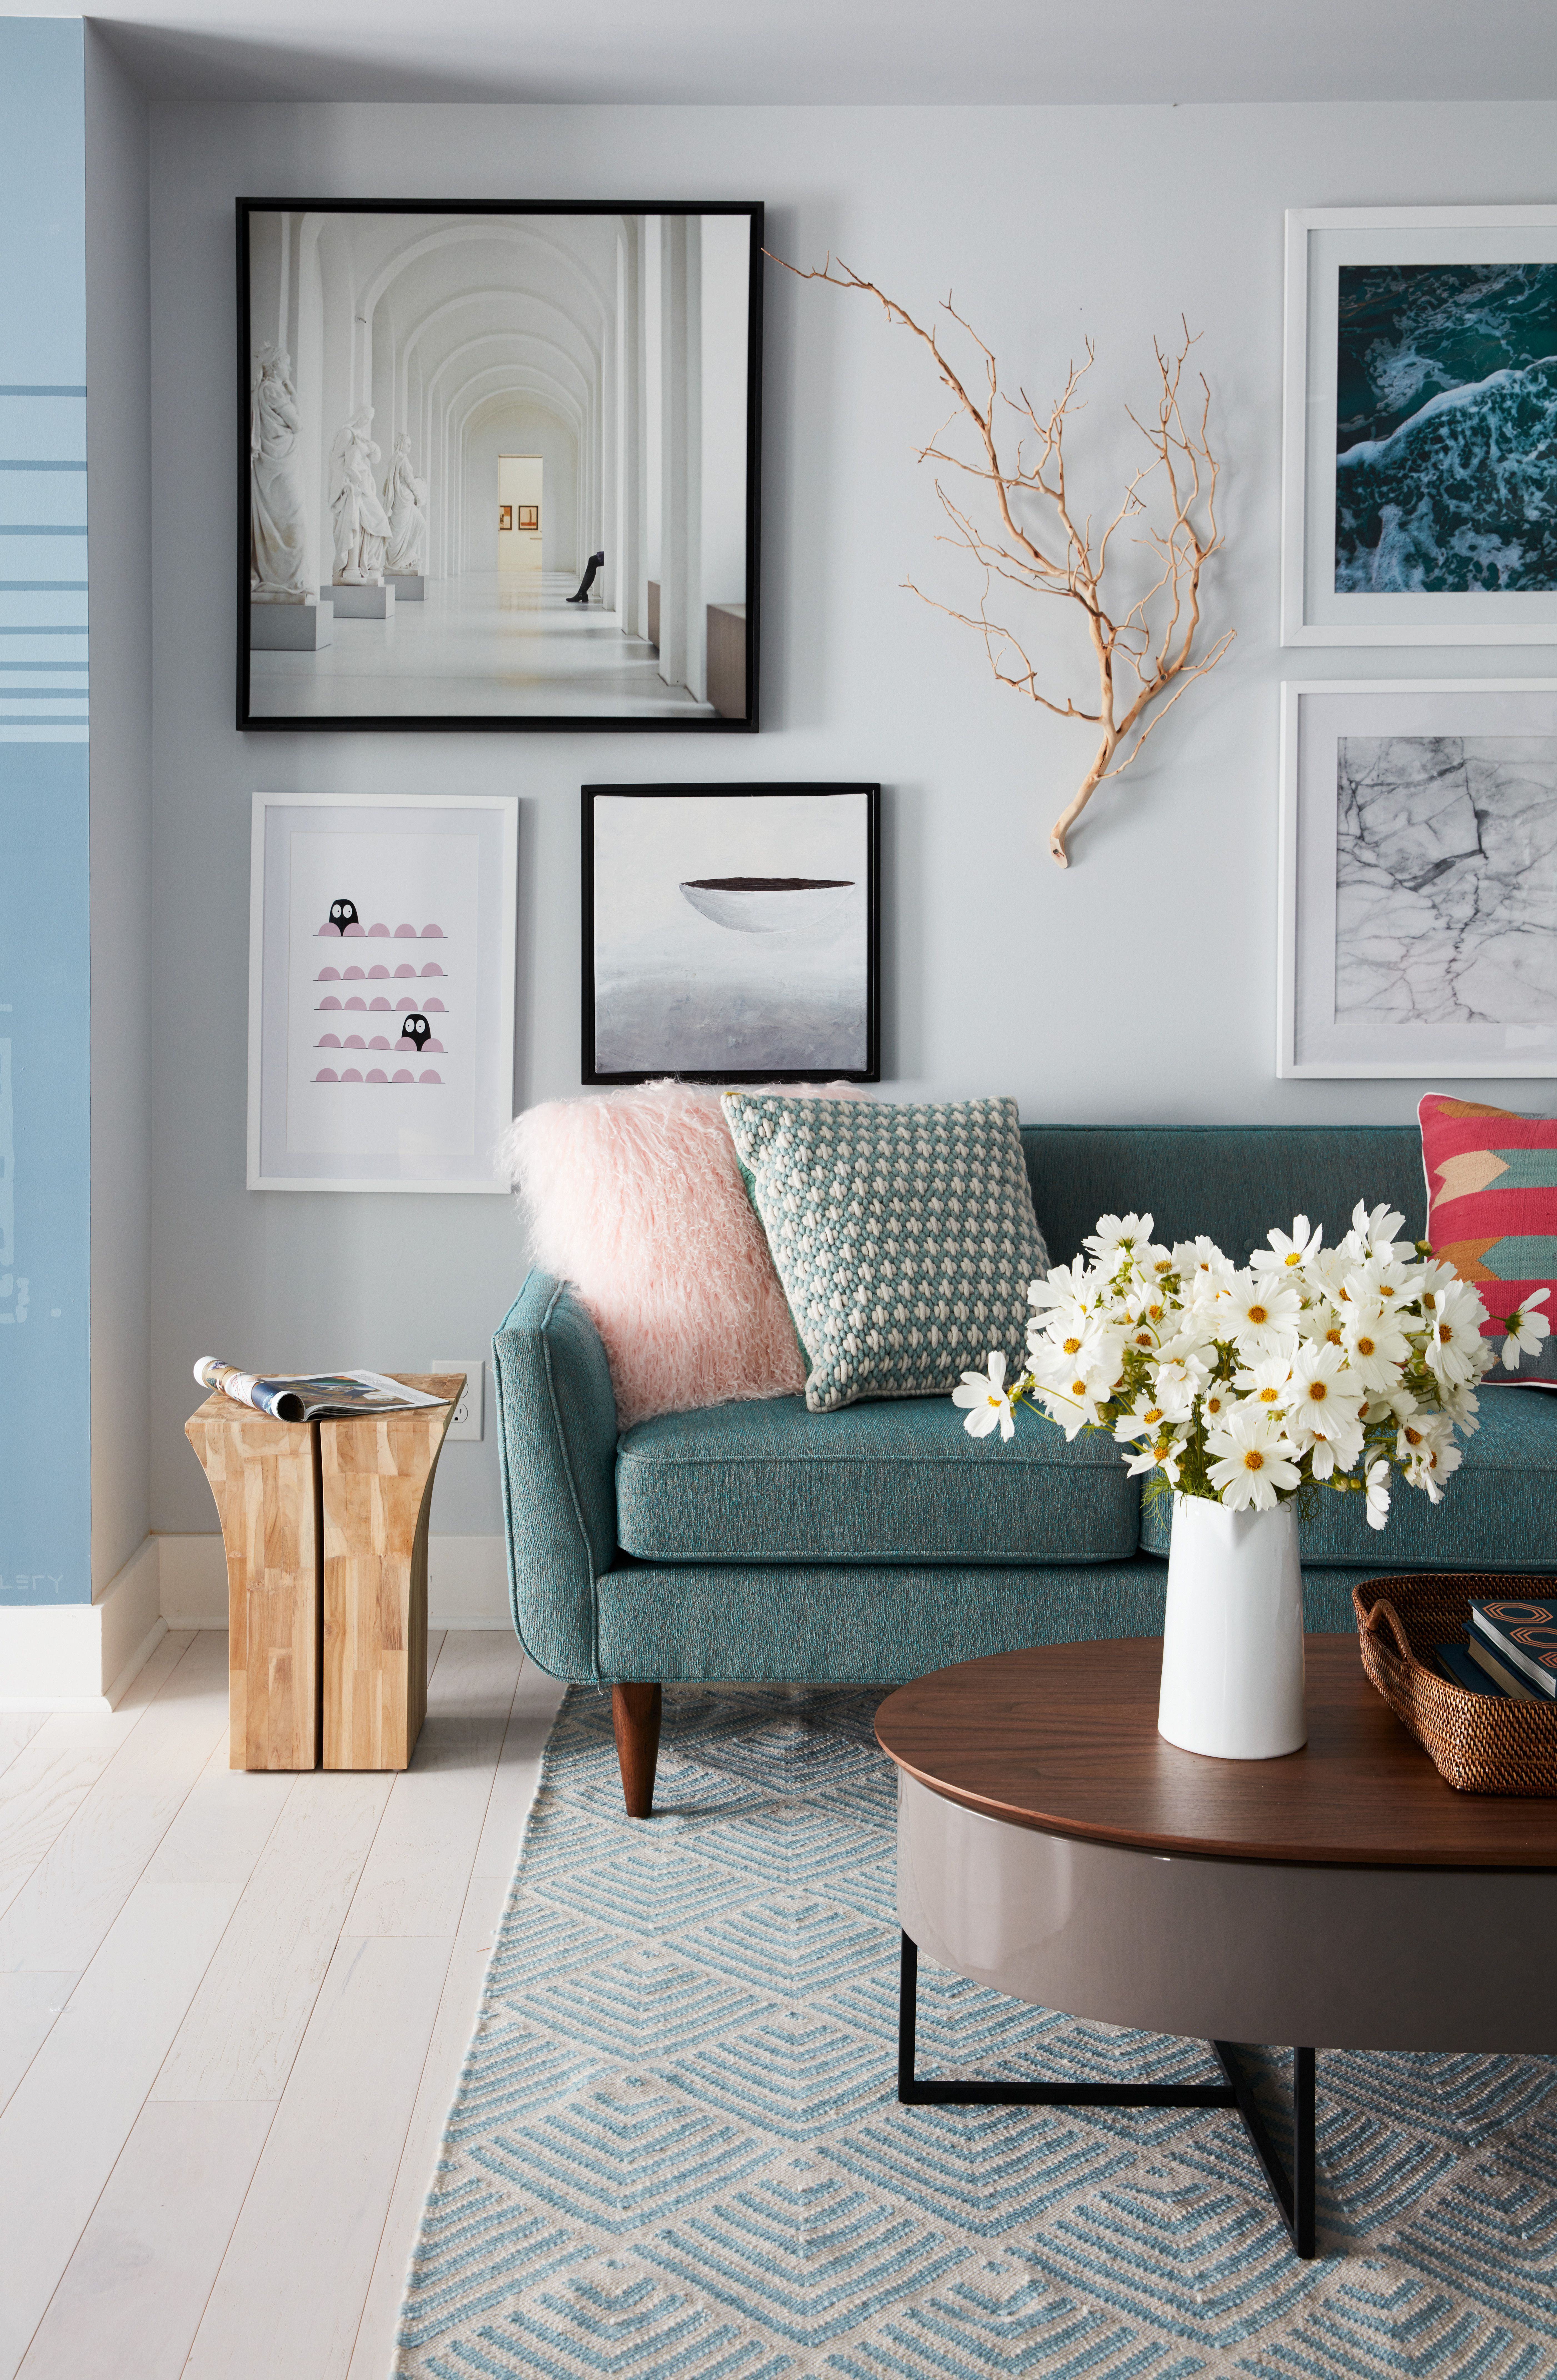 Bring Room to Room Harmony to your home with